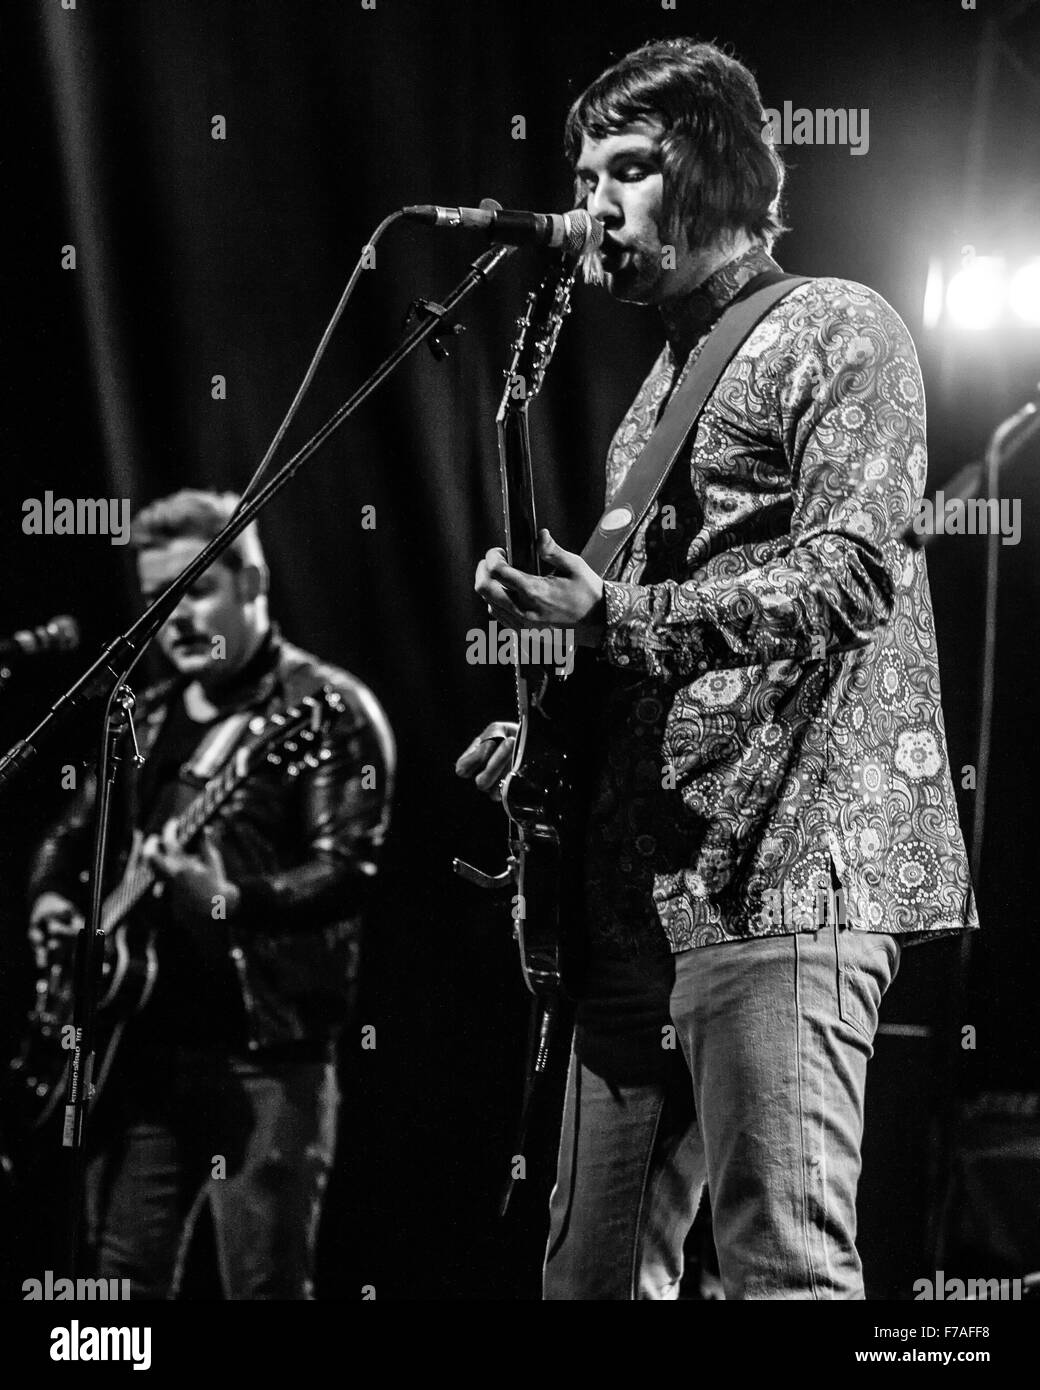 Dublin,Ireland,Oct 28th,Penrose perform live at the Button Factory on Oct 28th in Dublin,Ireland - Stock Image